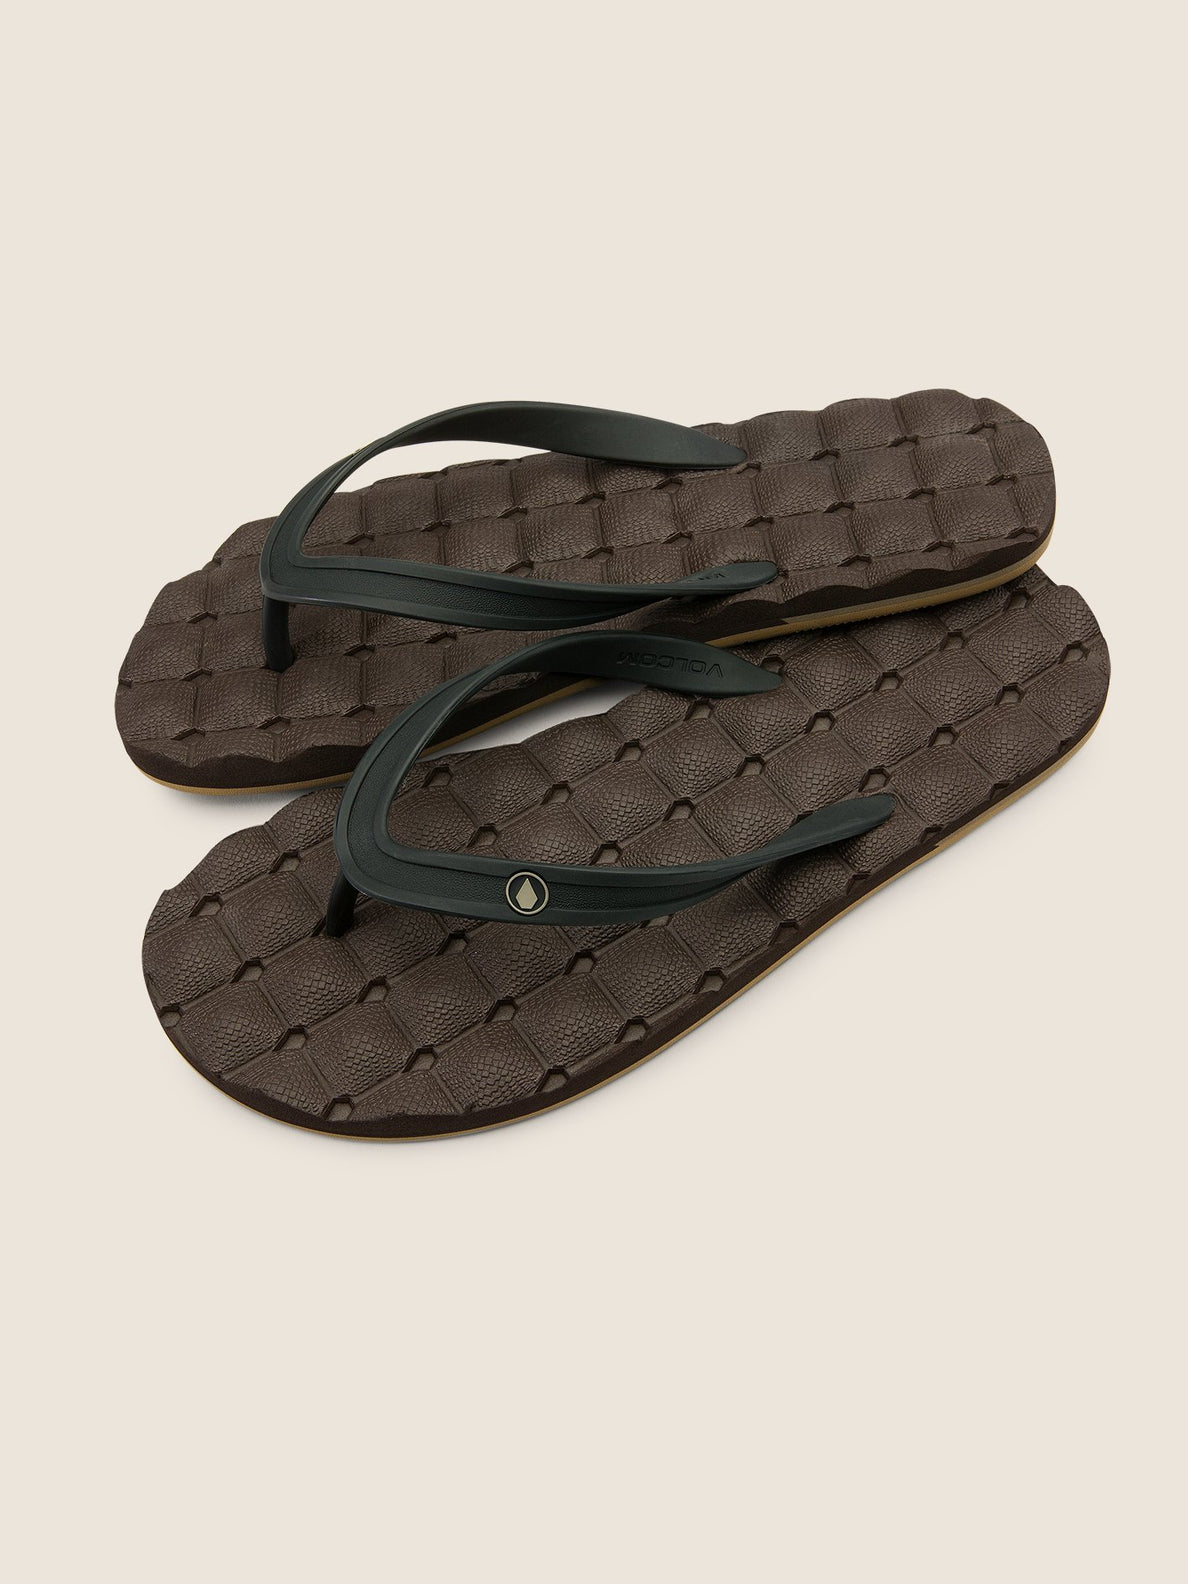 Recliner Rubber 2 Sandals In Brown Combo, Front View